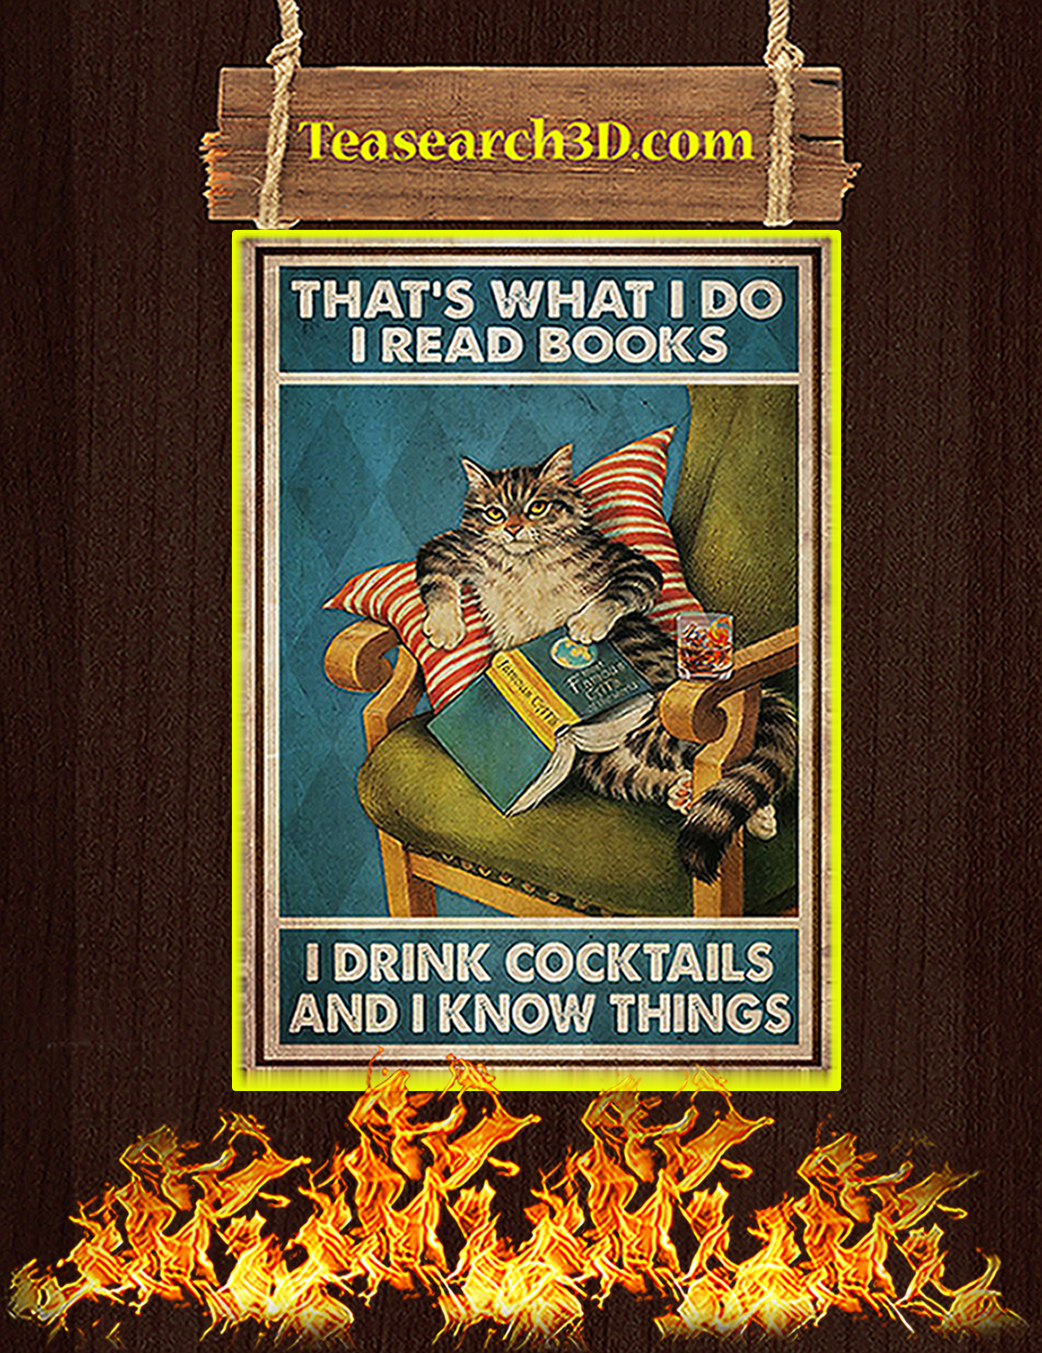 Cat That's what I do I read books I drink cocktails and I know things poster A1